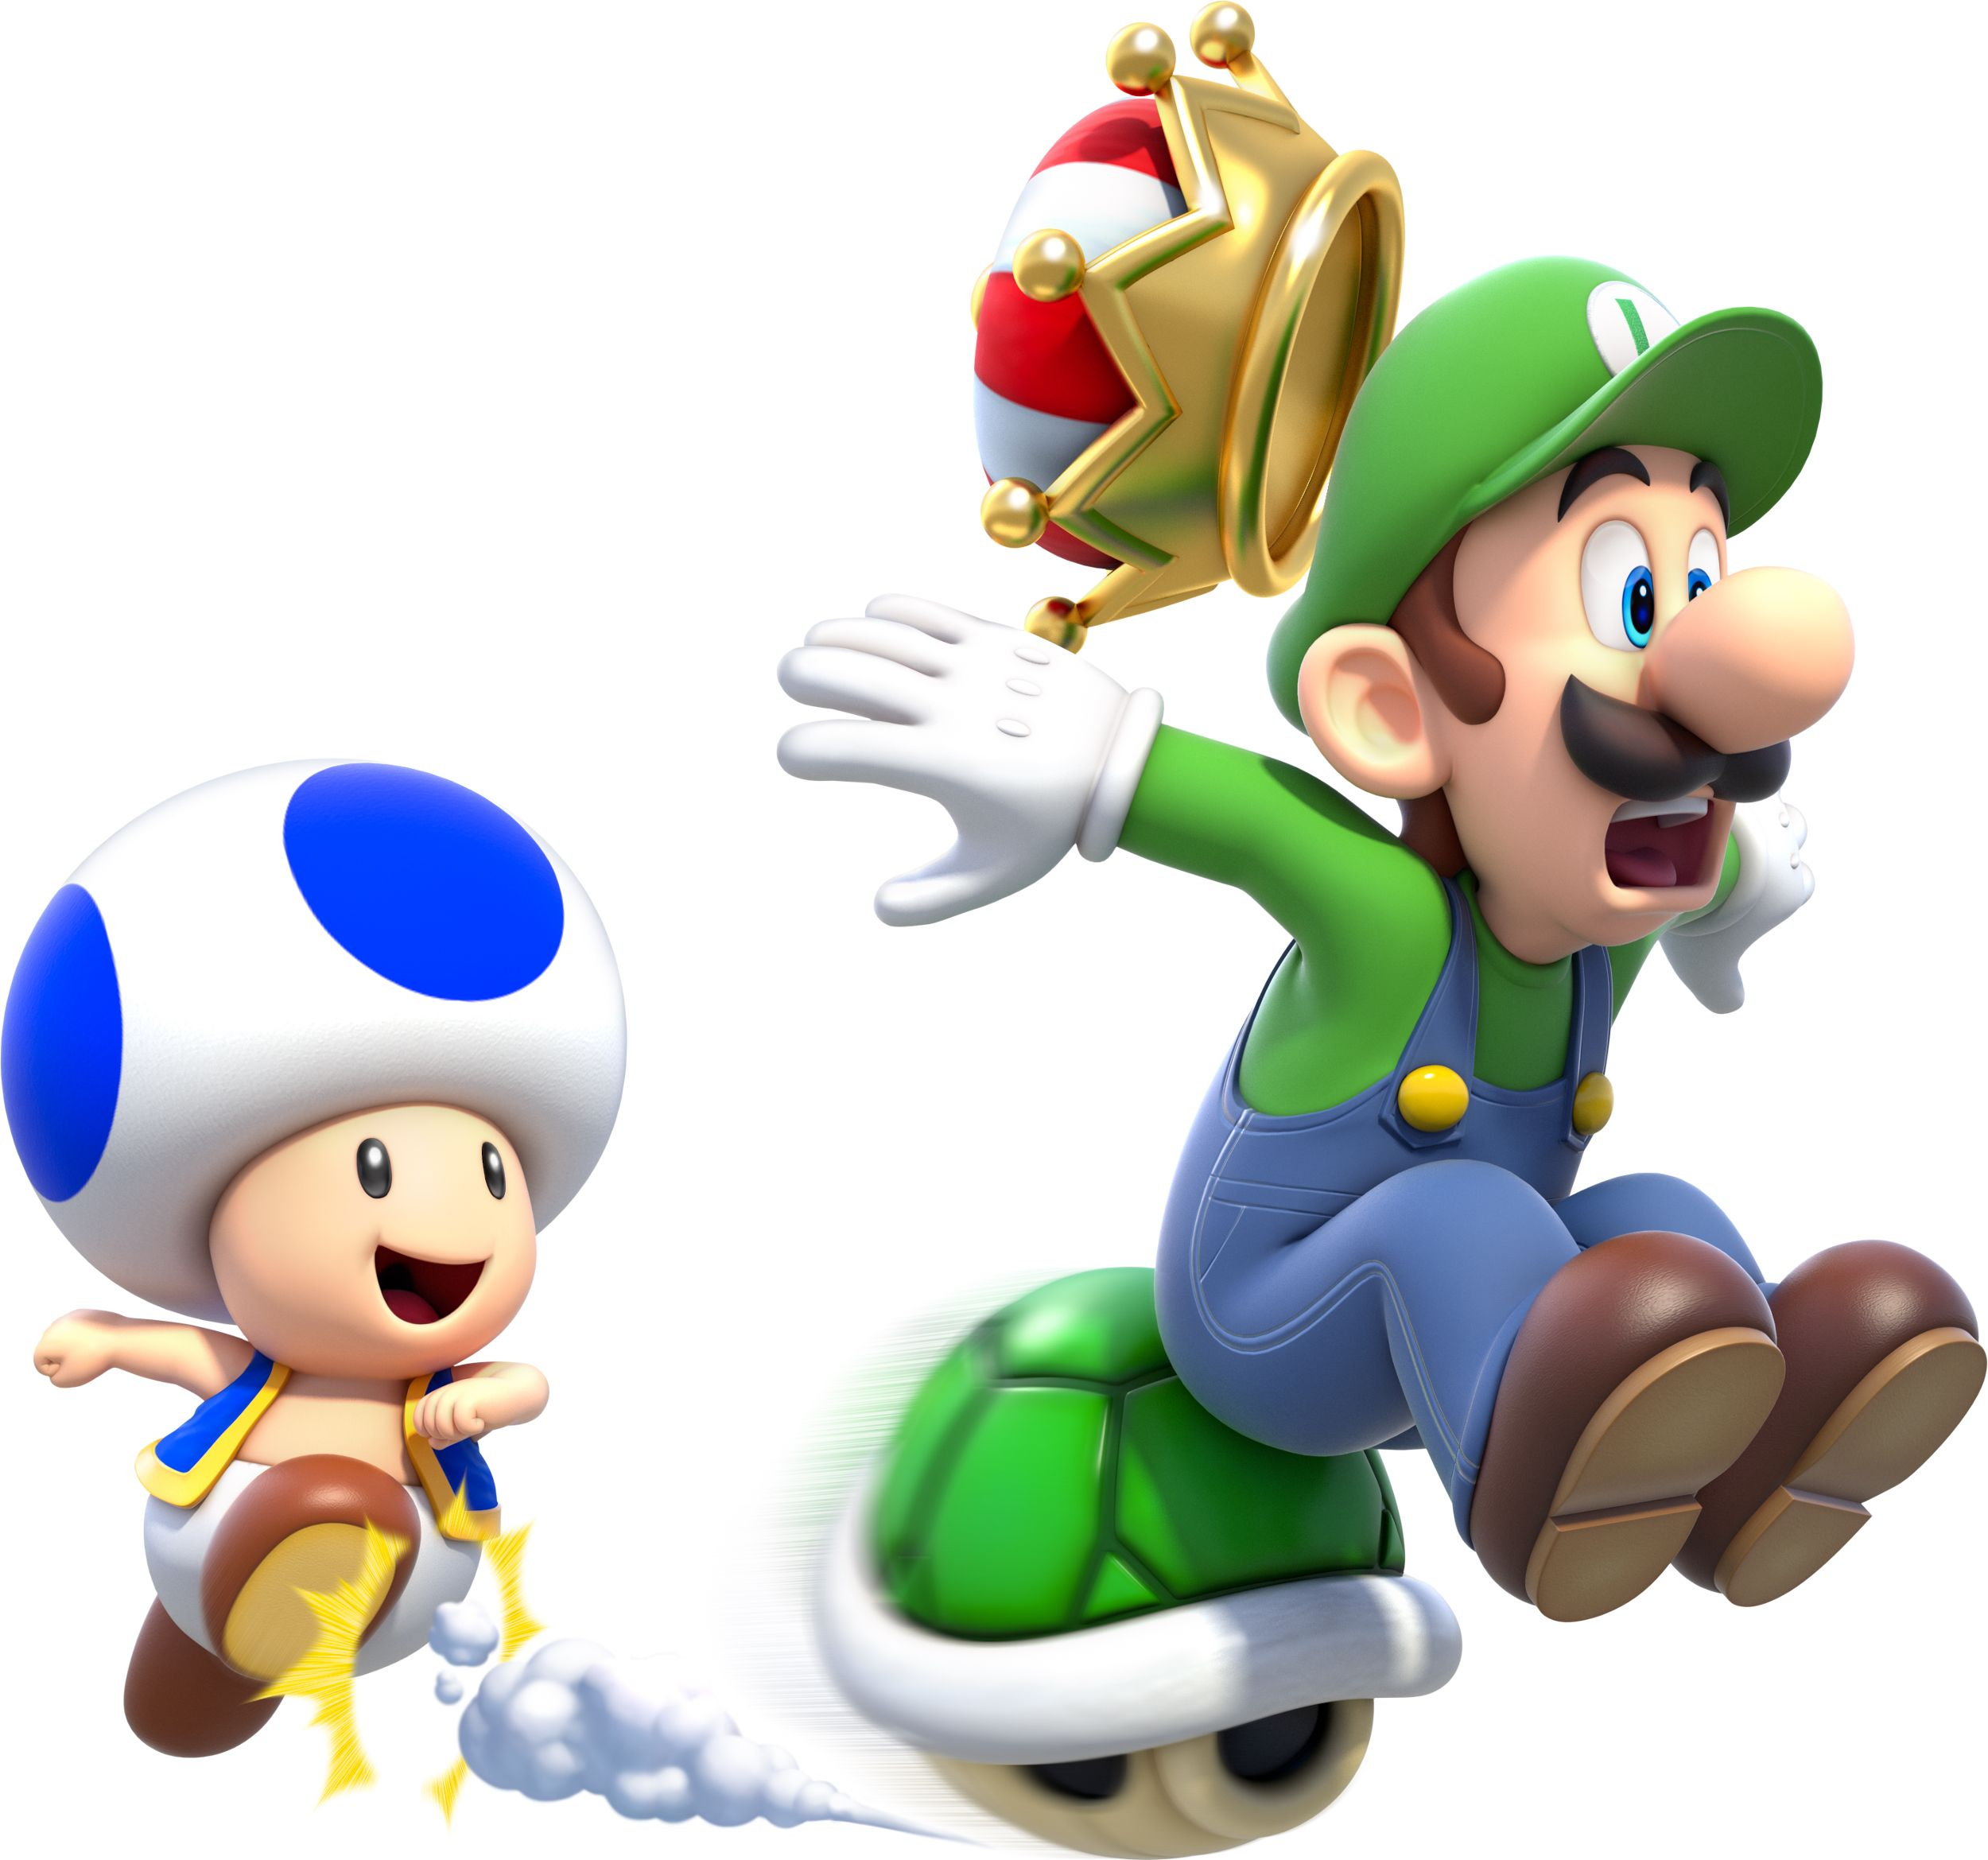 Toads Png Yellow Toad New Super Mario Bros Series Super Mario 1200 2076 Png Download Free Transparent Background Toads P Mario Bros Super Mario Bros Toad